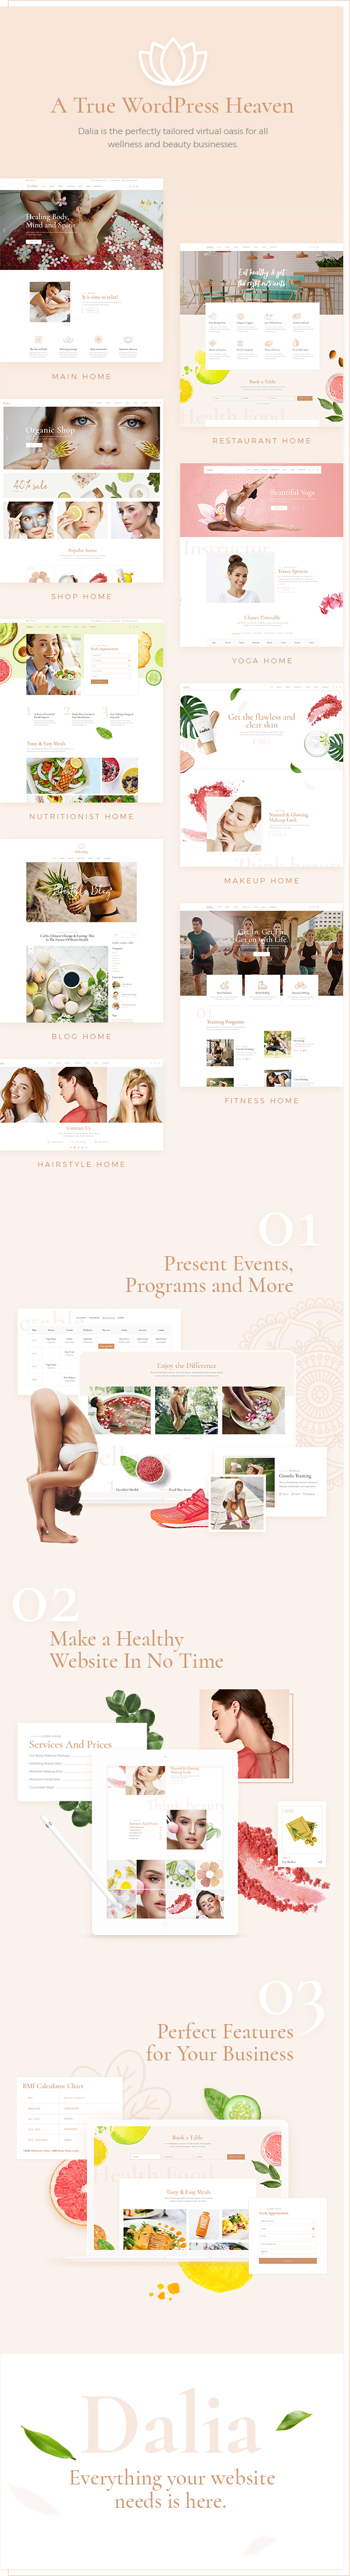 Dalia - A Modern Wellness and Lifestyle Theme - 1